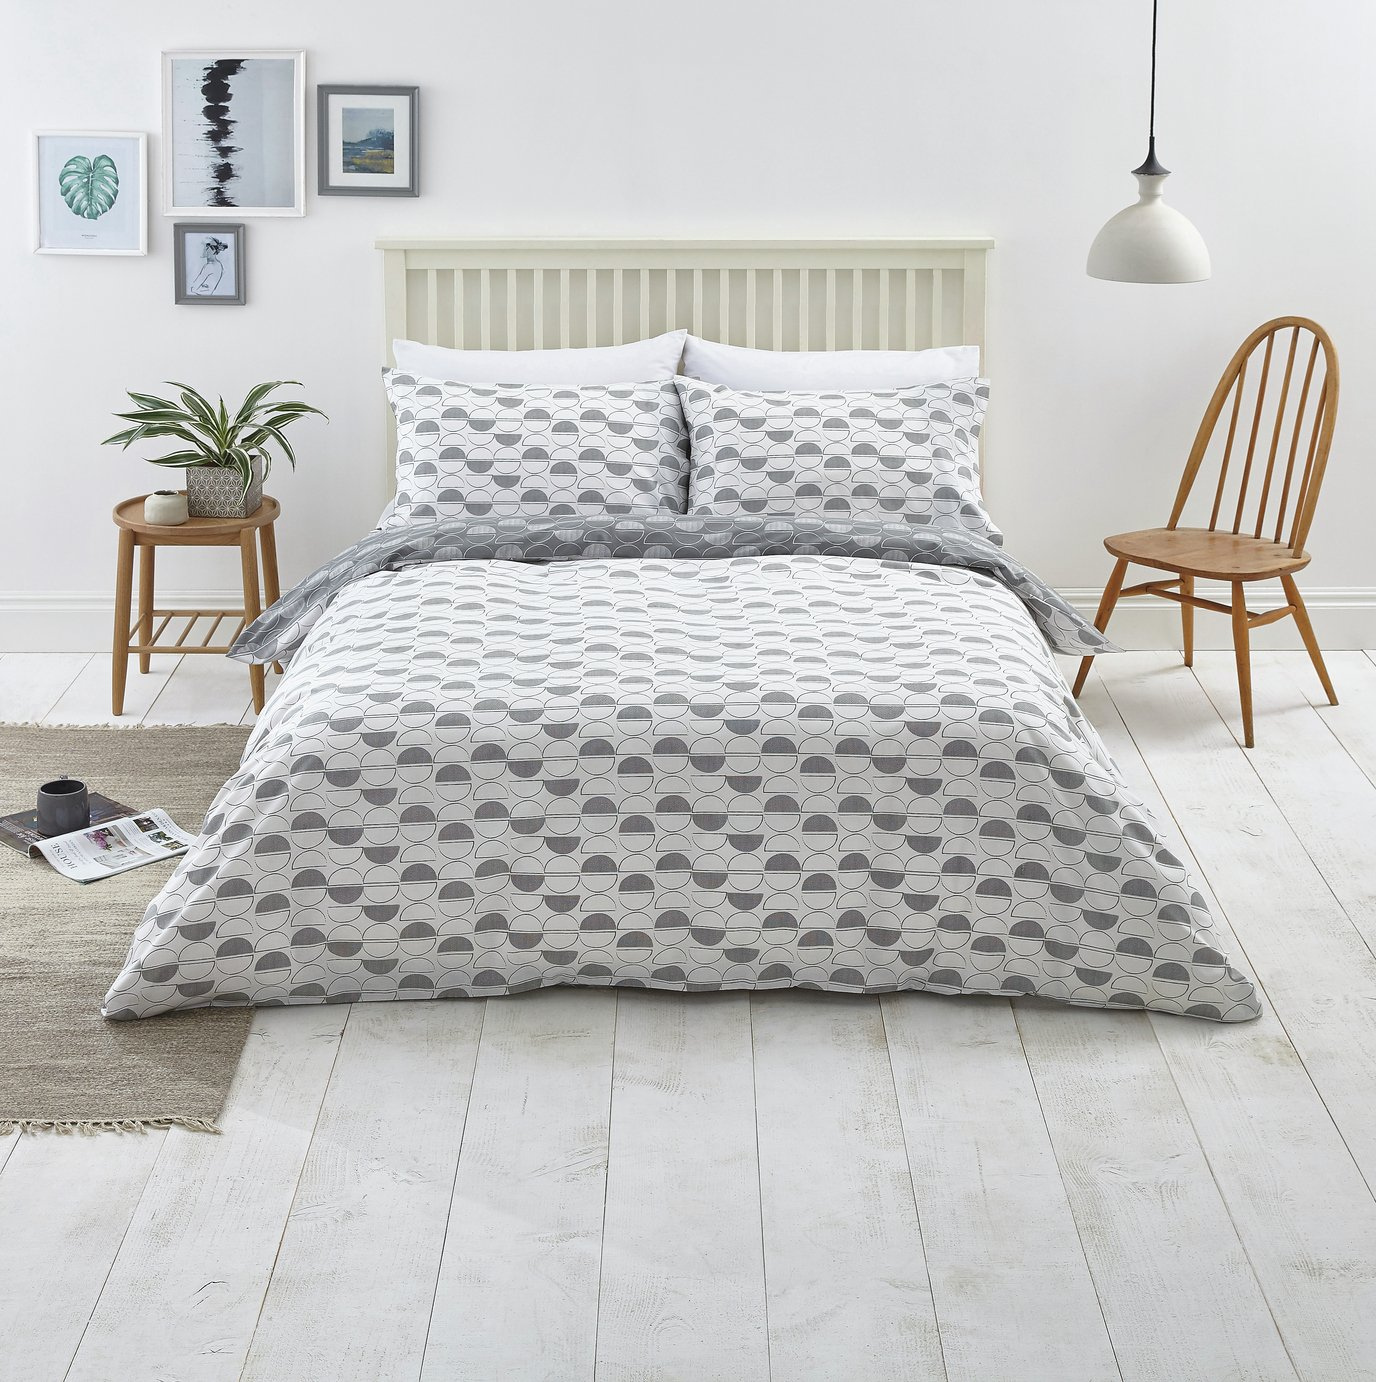 Argos Home Slate Circle Print Bedding Set - Kingsize